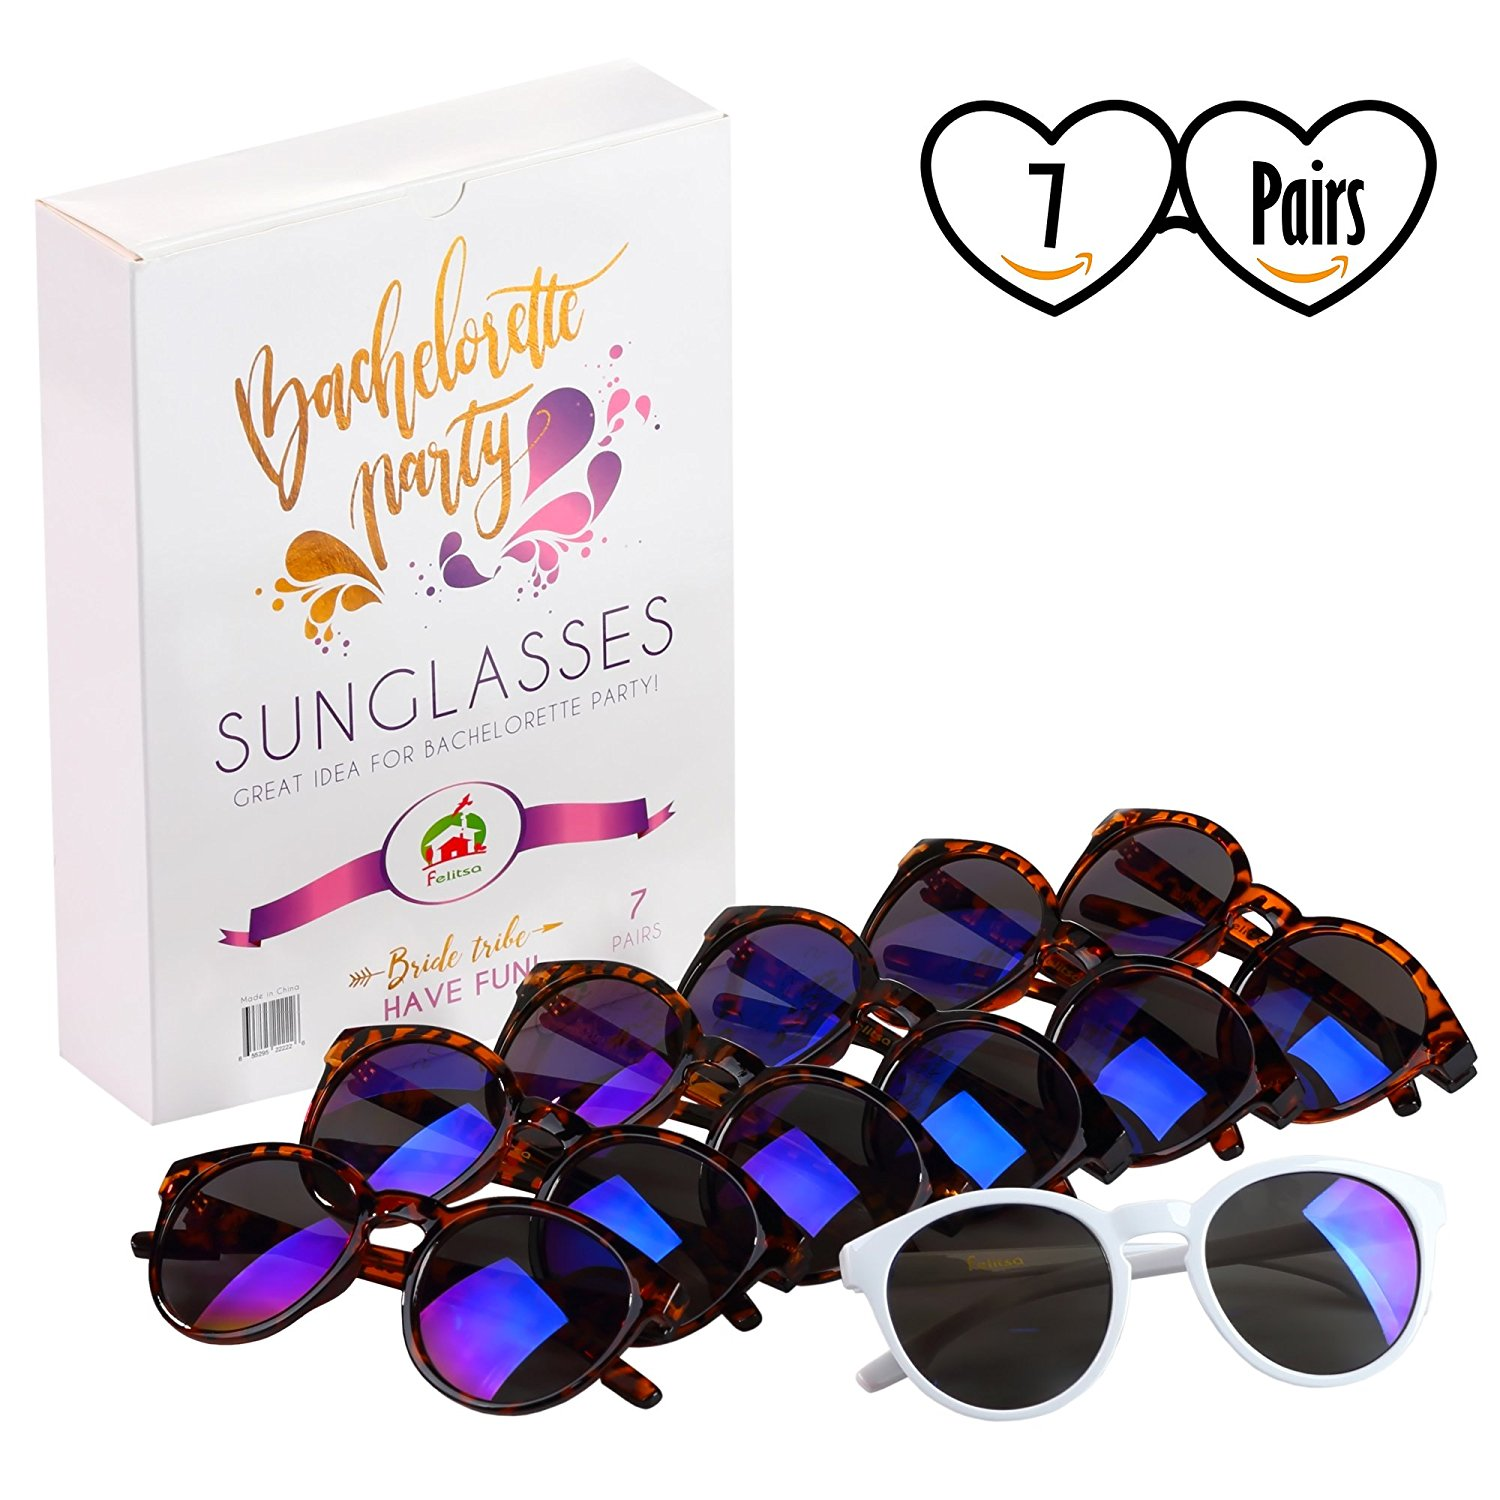 690df4affb15 Get Quotations · Felitsa Bachelorette Party Sunglasses - 7 Pairs of Bride  Tribe Glasses - Perfect for Bridesmaid Gifts